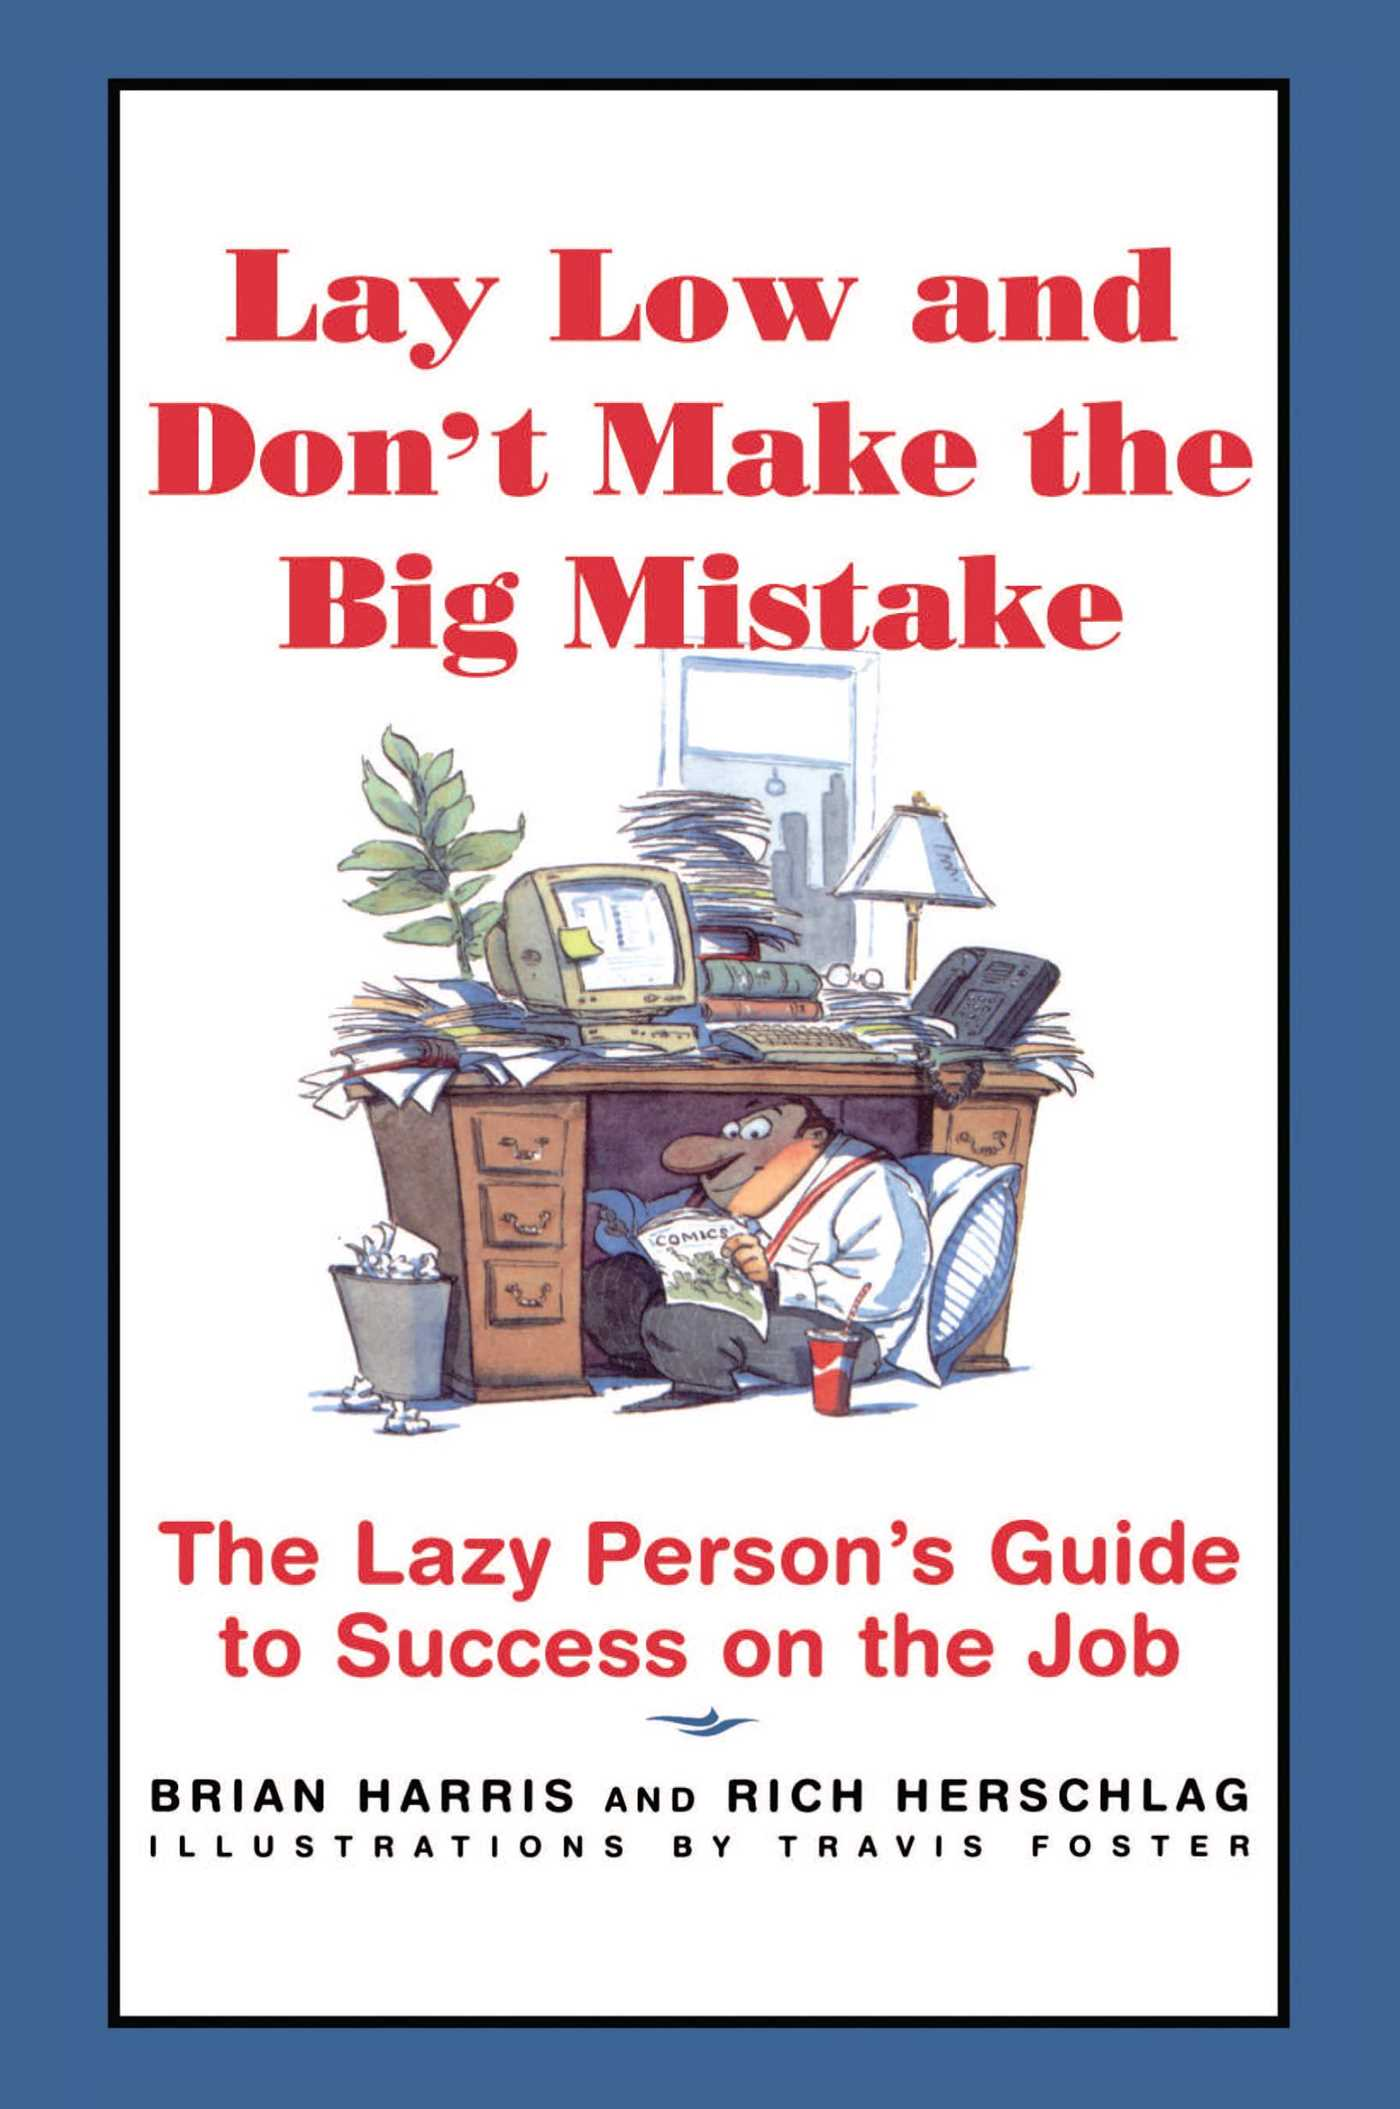 Lay-low-and-dont-make-the-big-mistake-9780684834917_hr